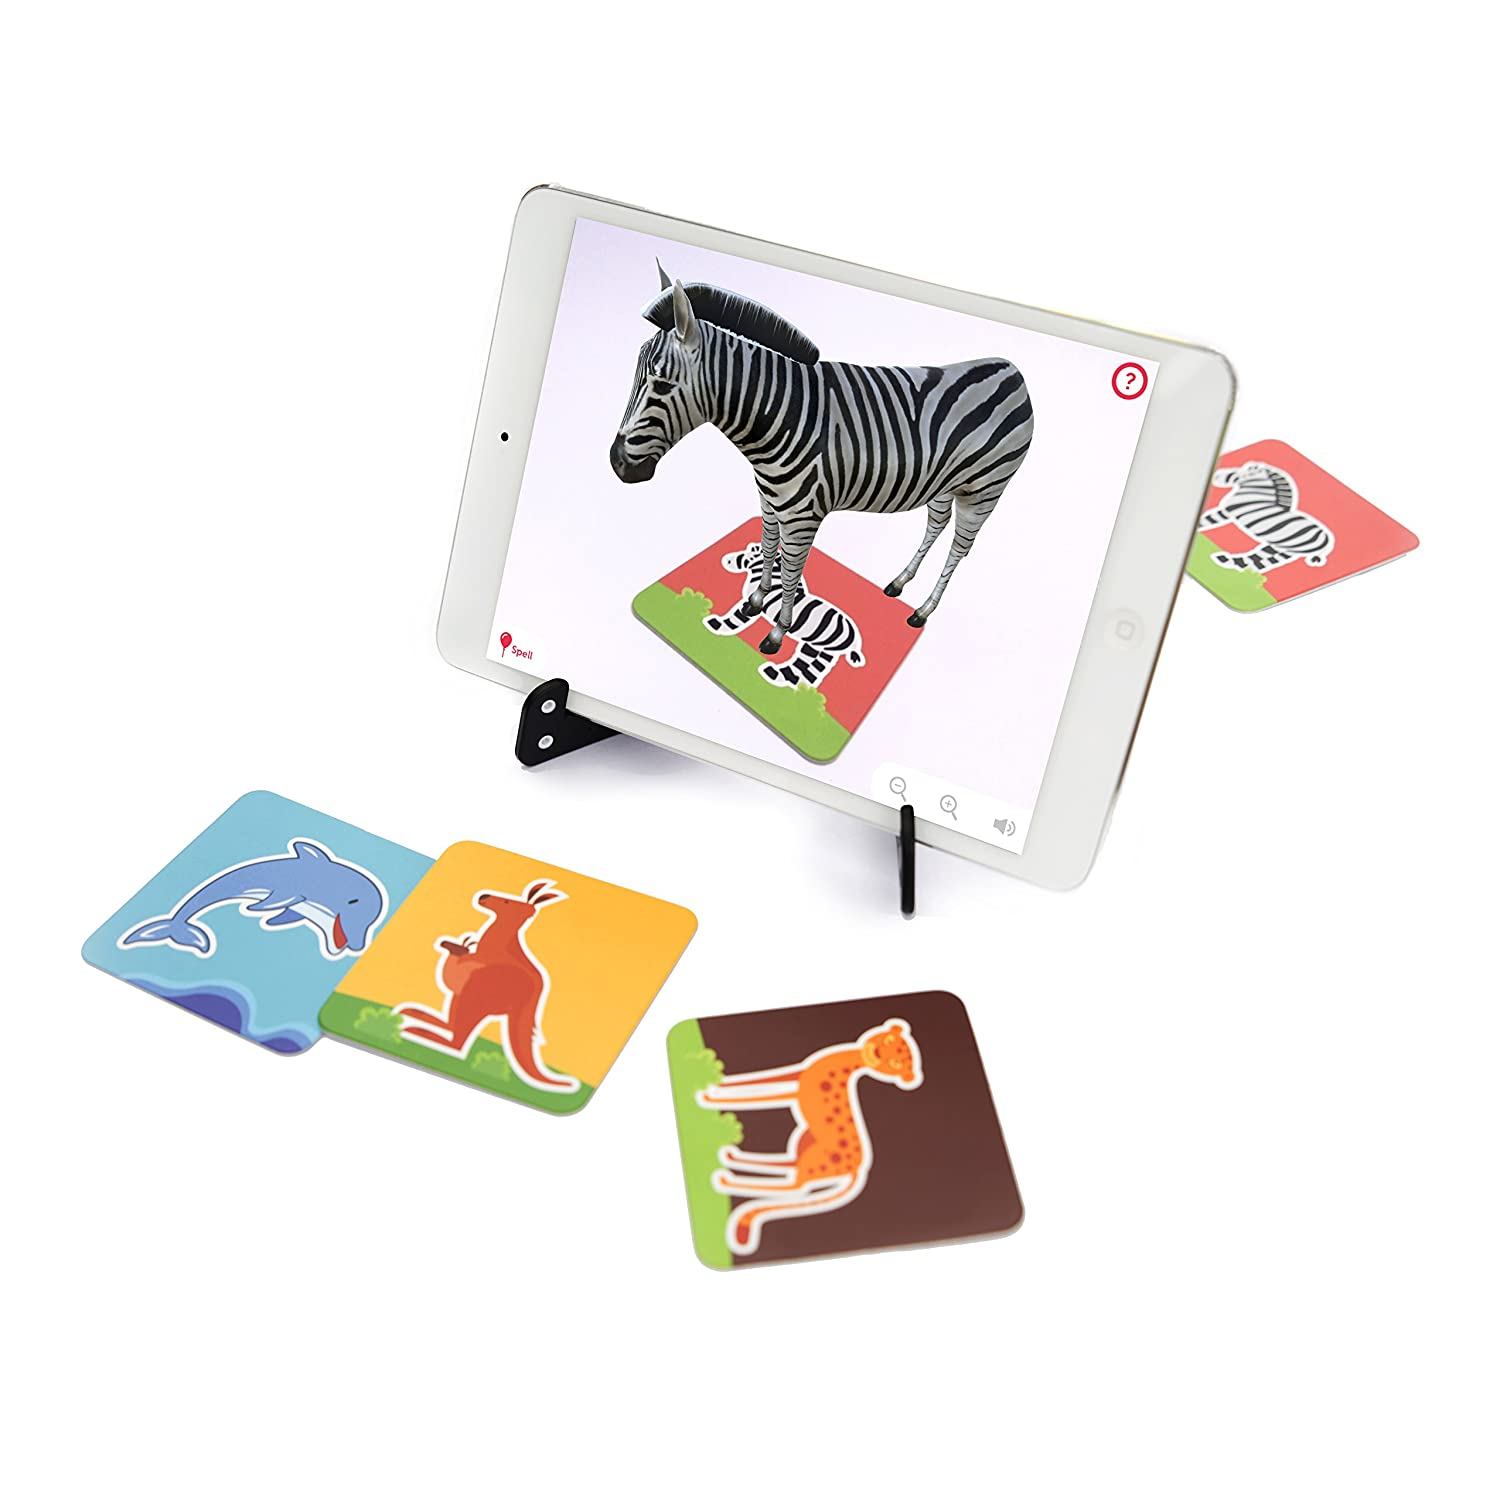 Preschool Girls and Boys 2 to 10 years Learning Toy For Toddles Augmented Reality Based Game Ideal Kids Gift 60 Animal Safari Flashcards Shifu Safari: 4D Educational